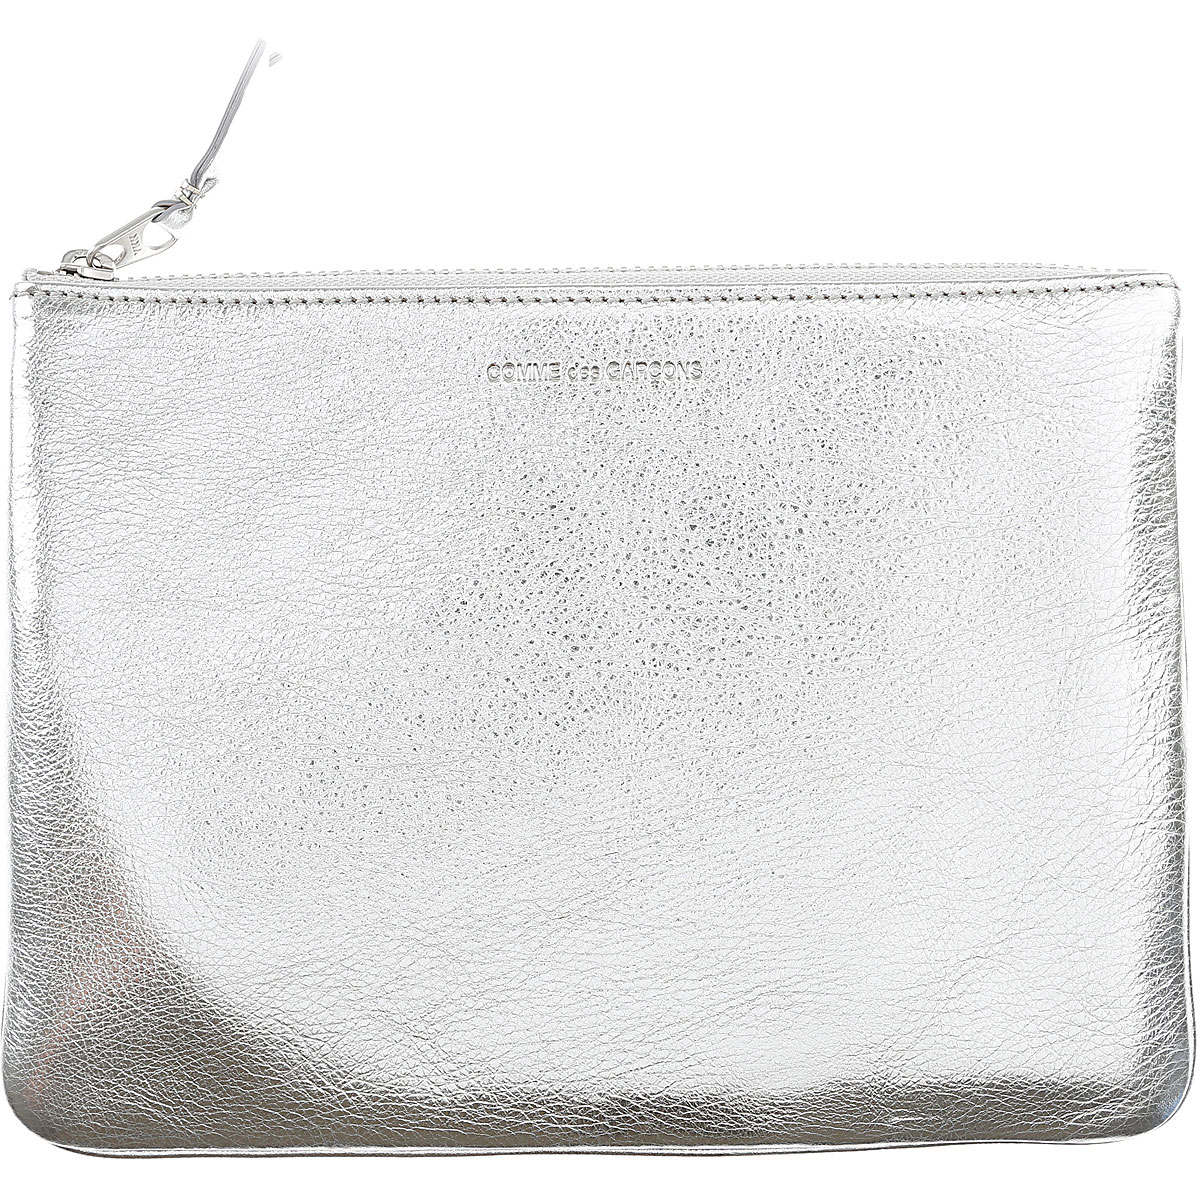 Comme des Garcons Womens Wallets Silver USA - GOOFASH